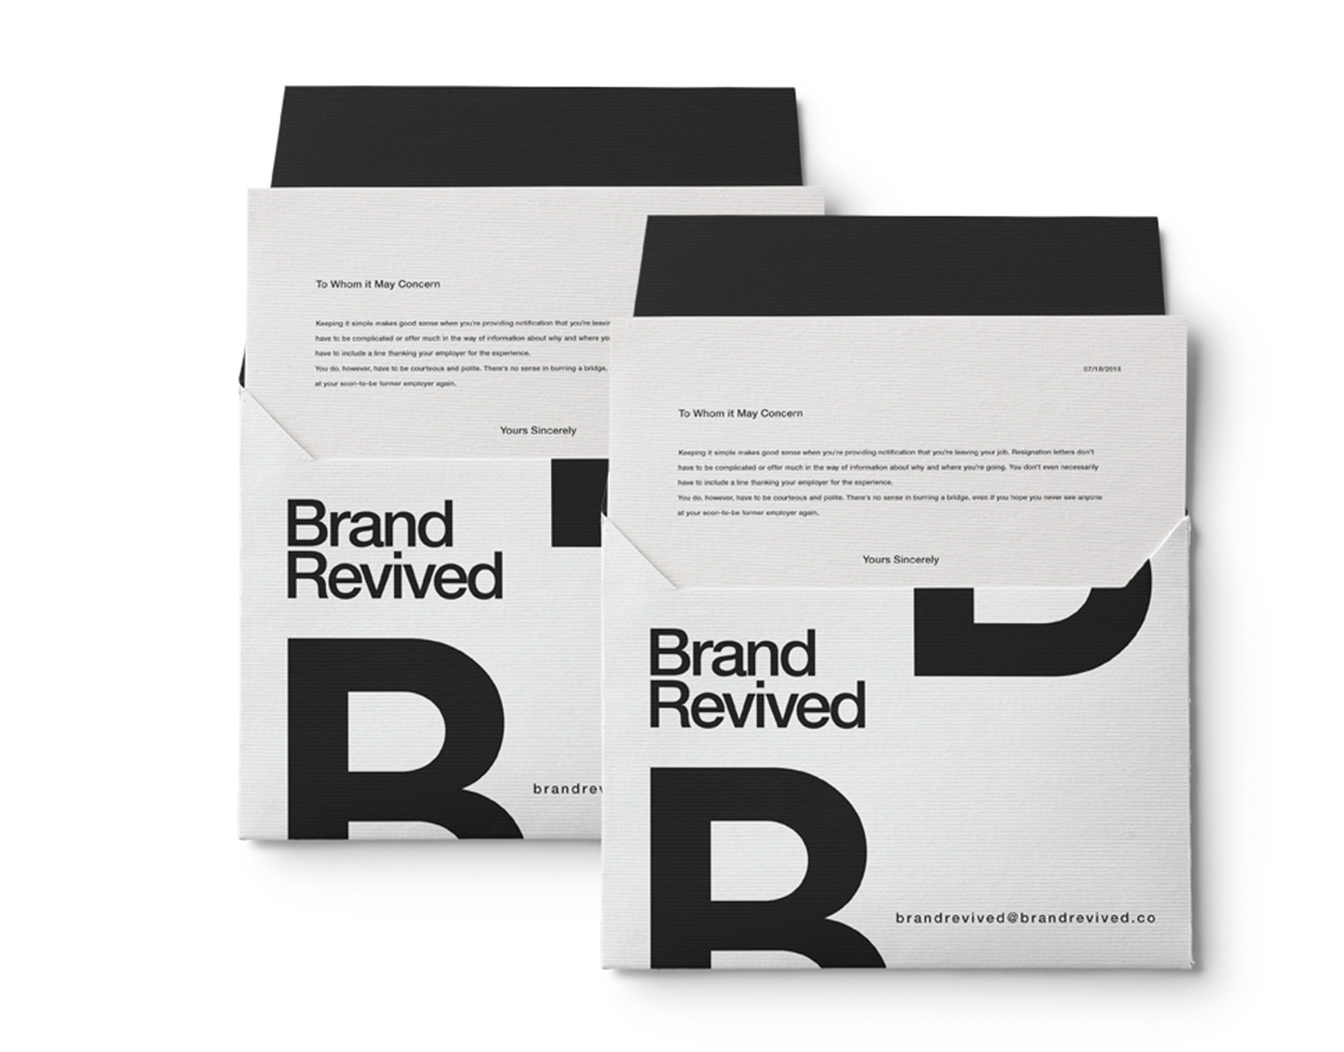 Two black and white envelopes with large typefaces